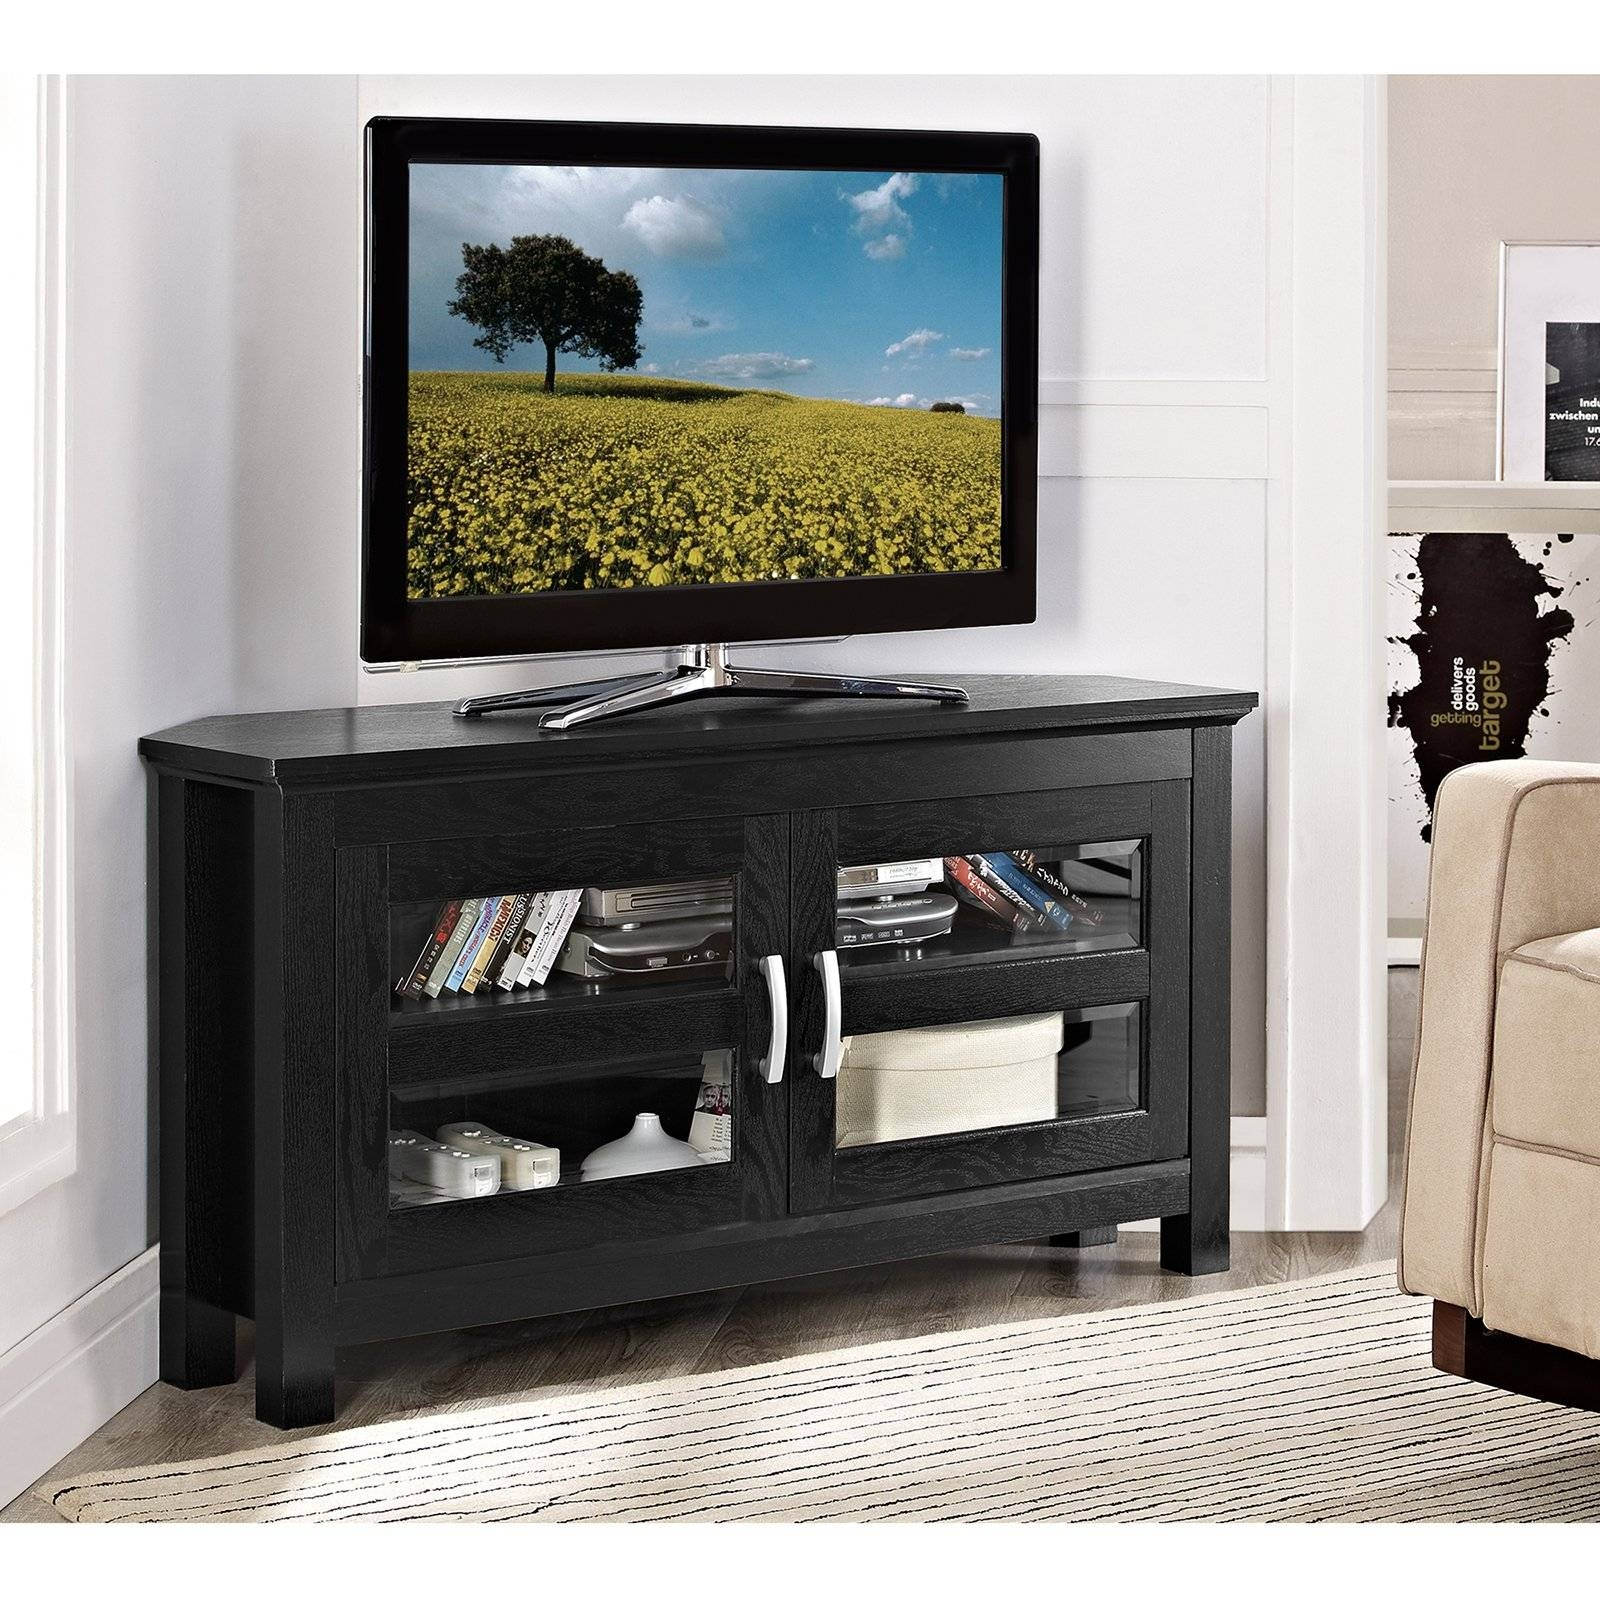 Compton Black Corner Tv Stand - Walmart pertaining to Black Wood Corner Tv Stands (Image 3 of 15)